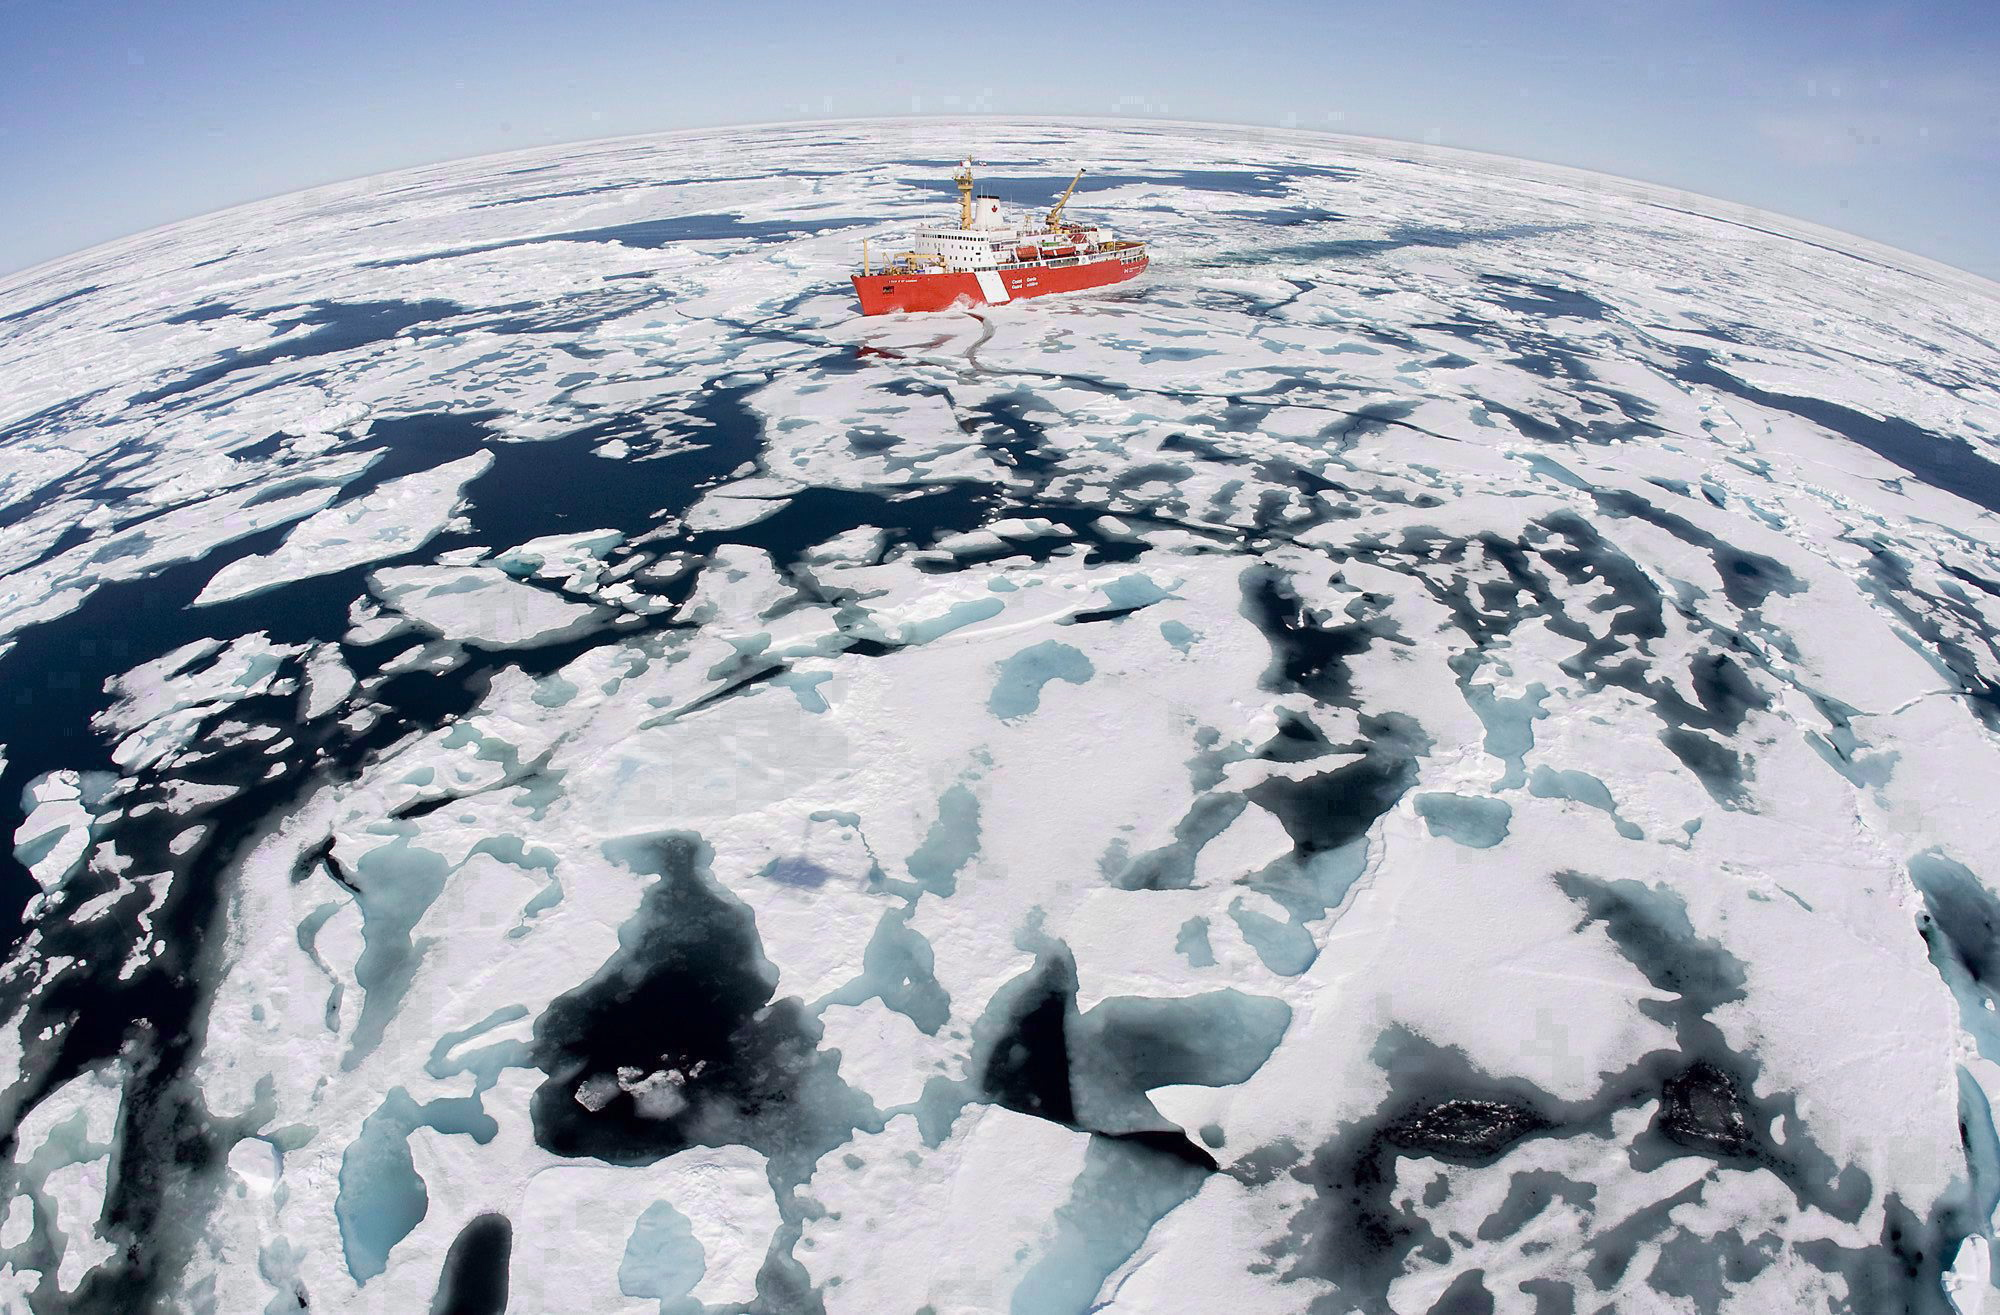 The Canadian Coast Guard icebreaker Louis S. St-Laurent makes its way through the ice in Baffin Bay on July 10, 2008.(Jonathan Hayward / The Canadian Press)